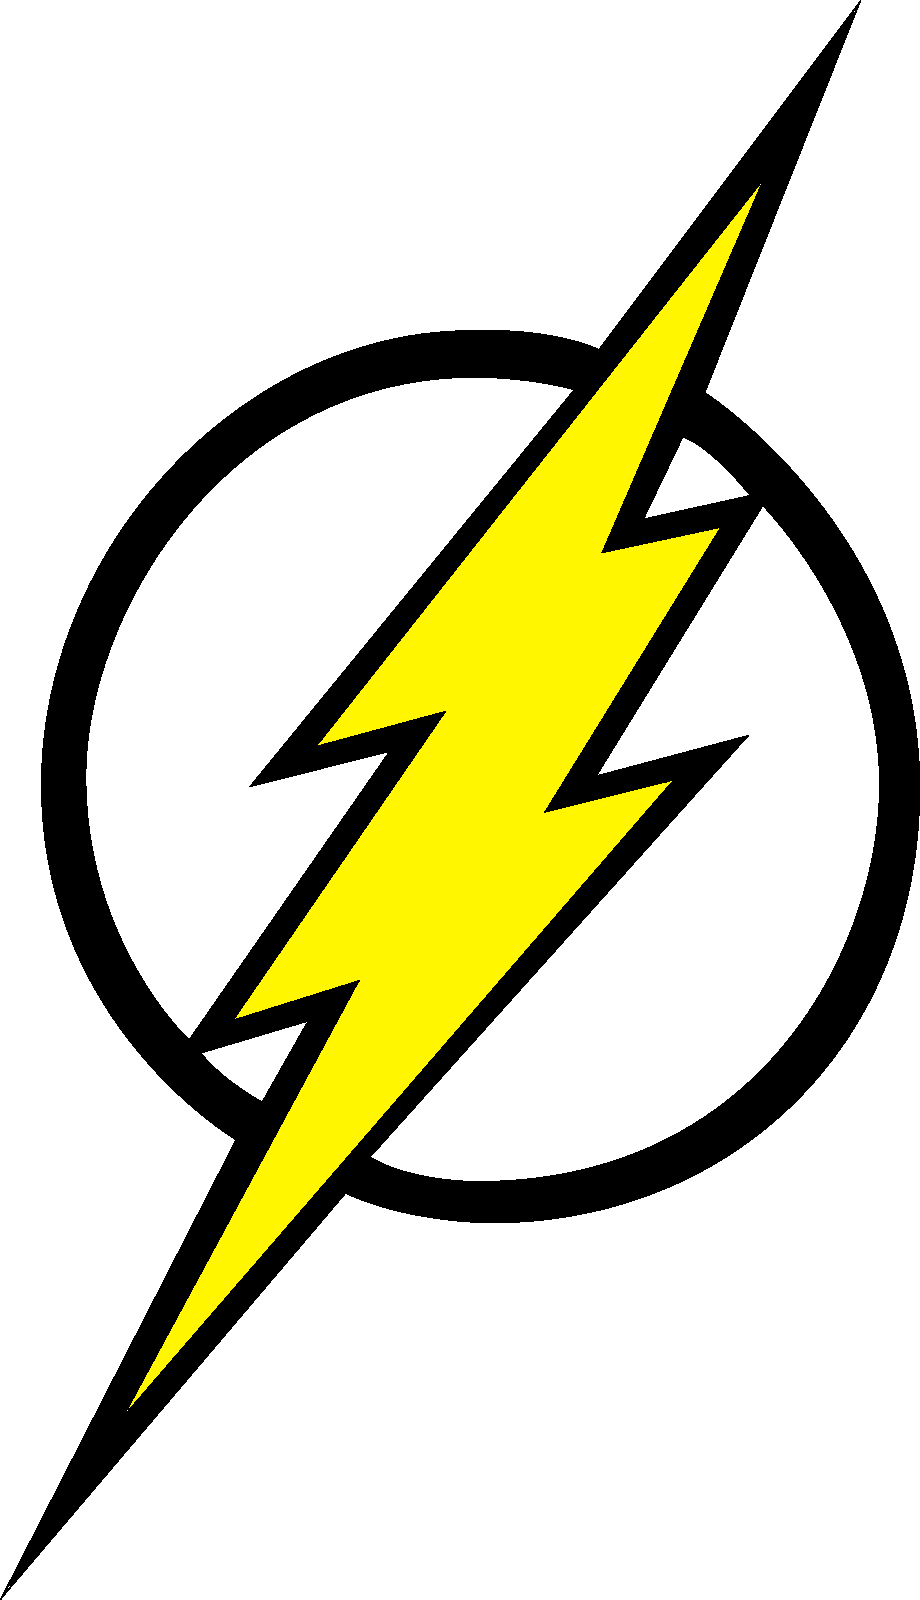 The flash lightning png. Know your meme this